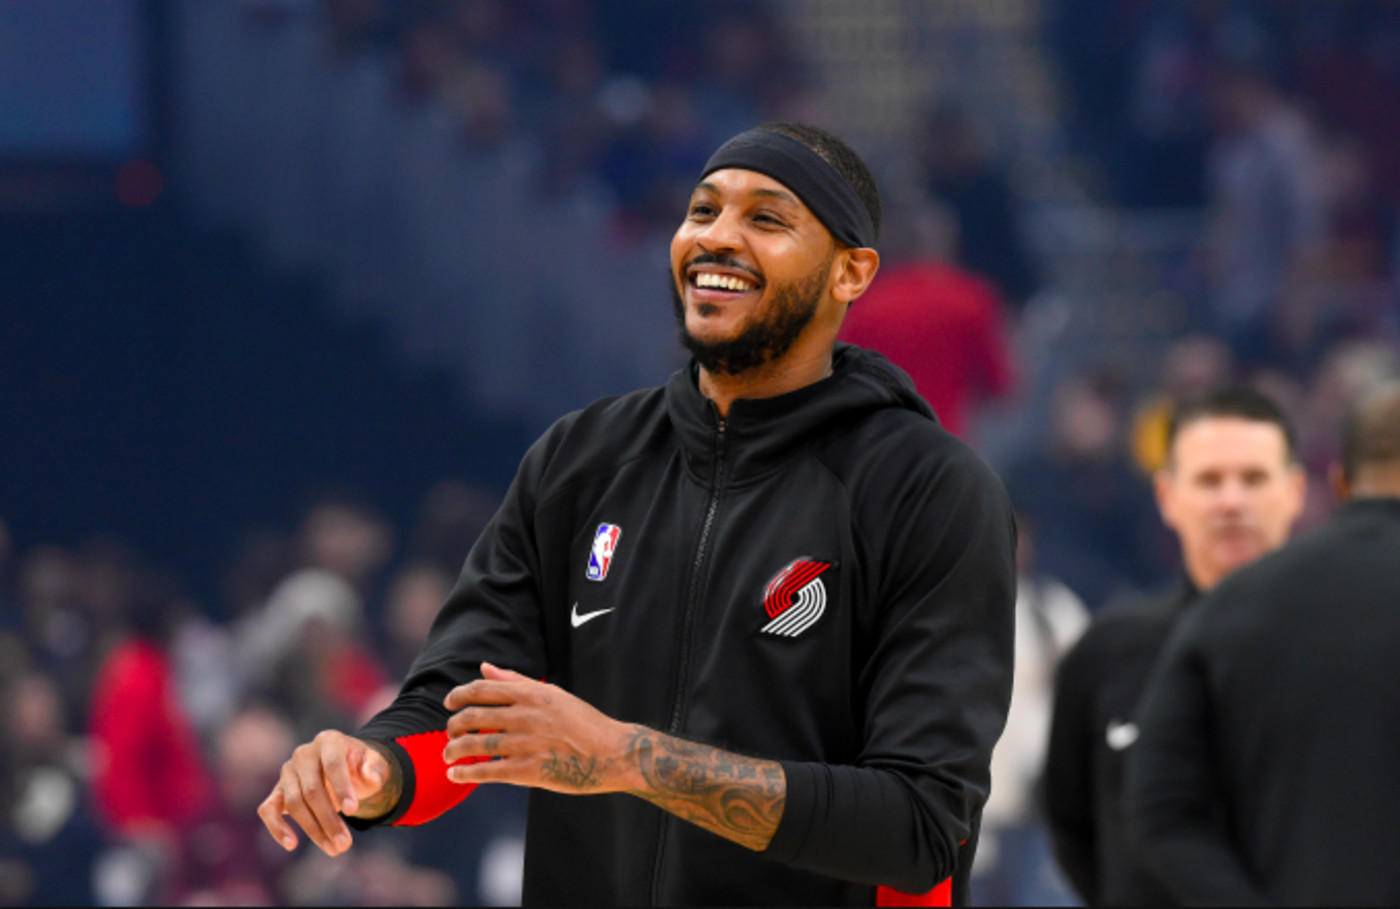 Carmelo Anthony #00 of the Portland Trail Blazers